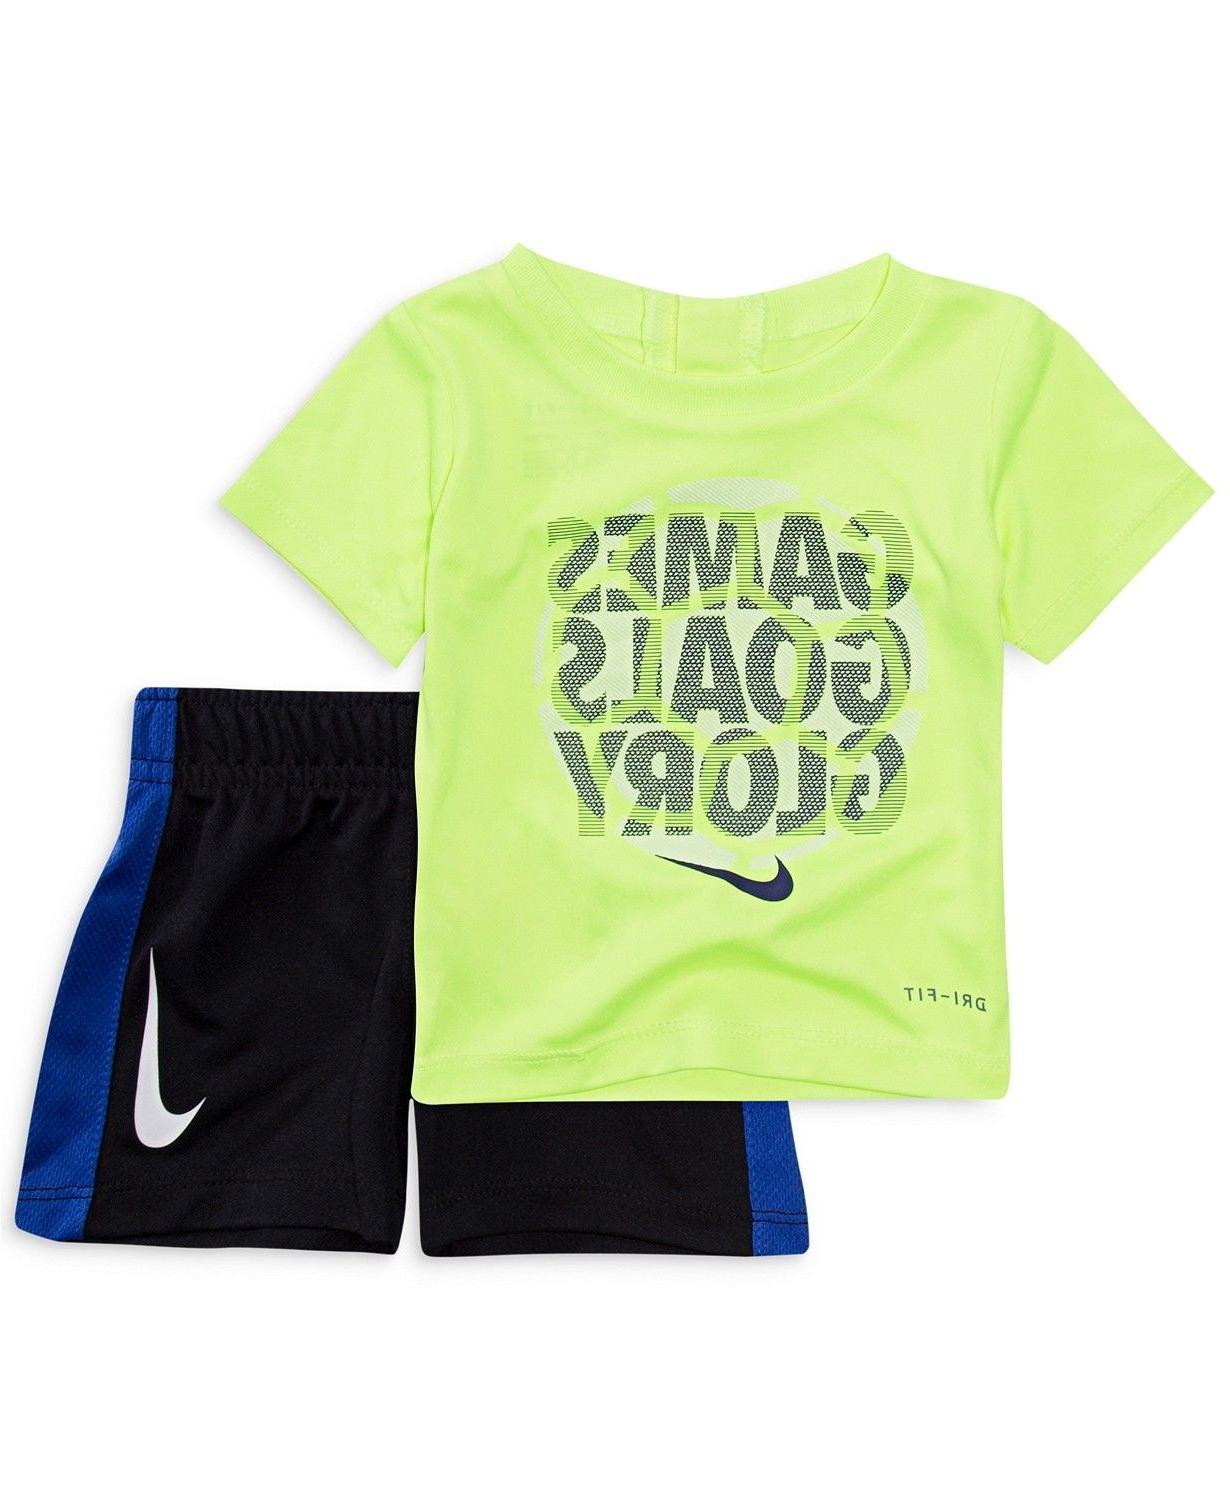 New Nike Swoosh Tee Shorts Size and Color